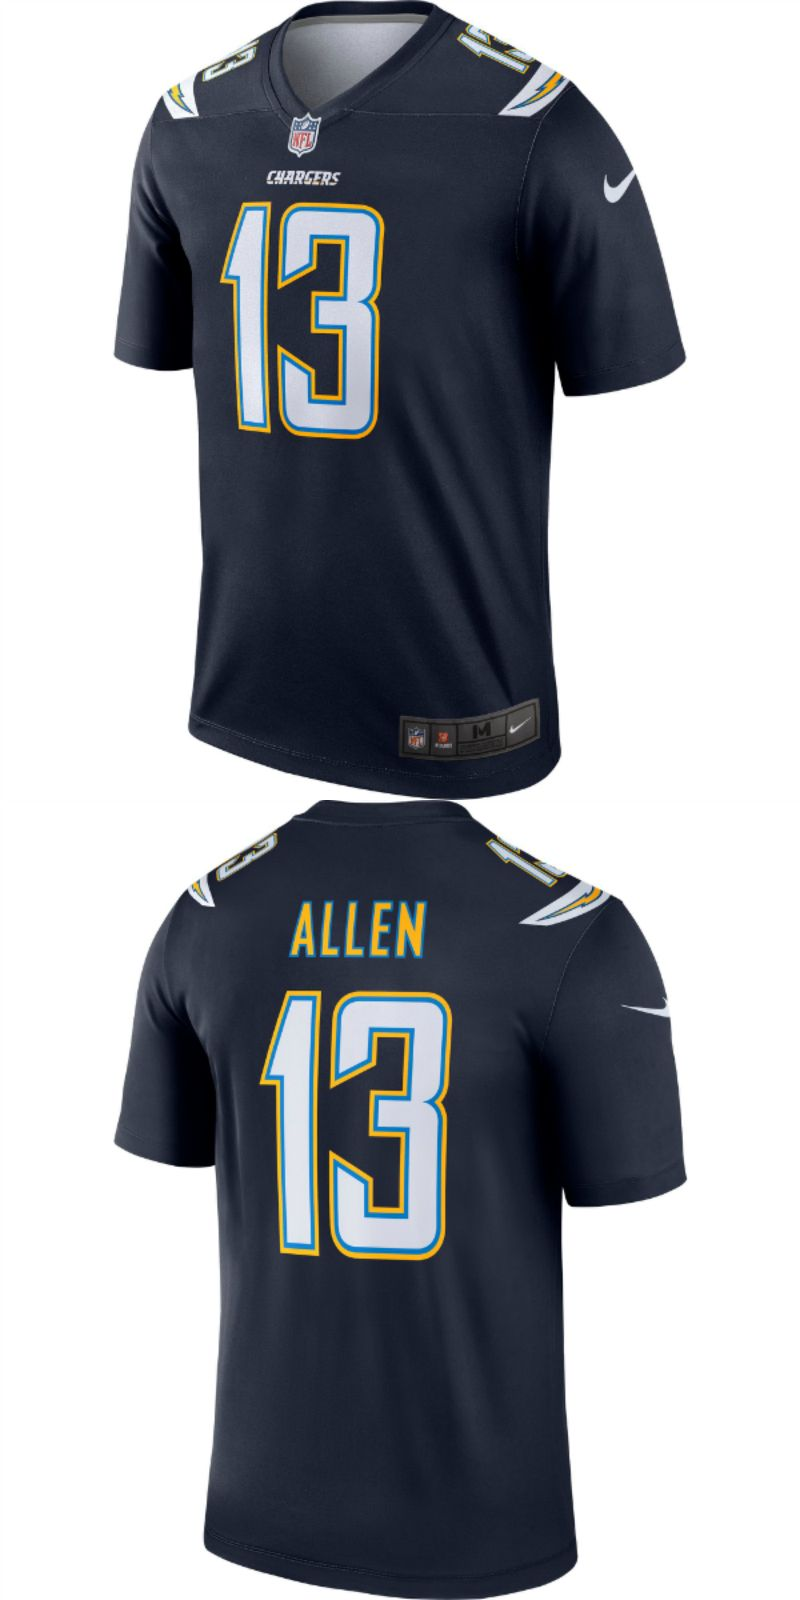 brand new 7275f d3f96 mens Los Angeles Chargers custom football Game jersey | NFL ...